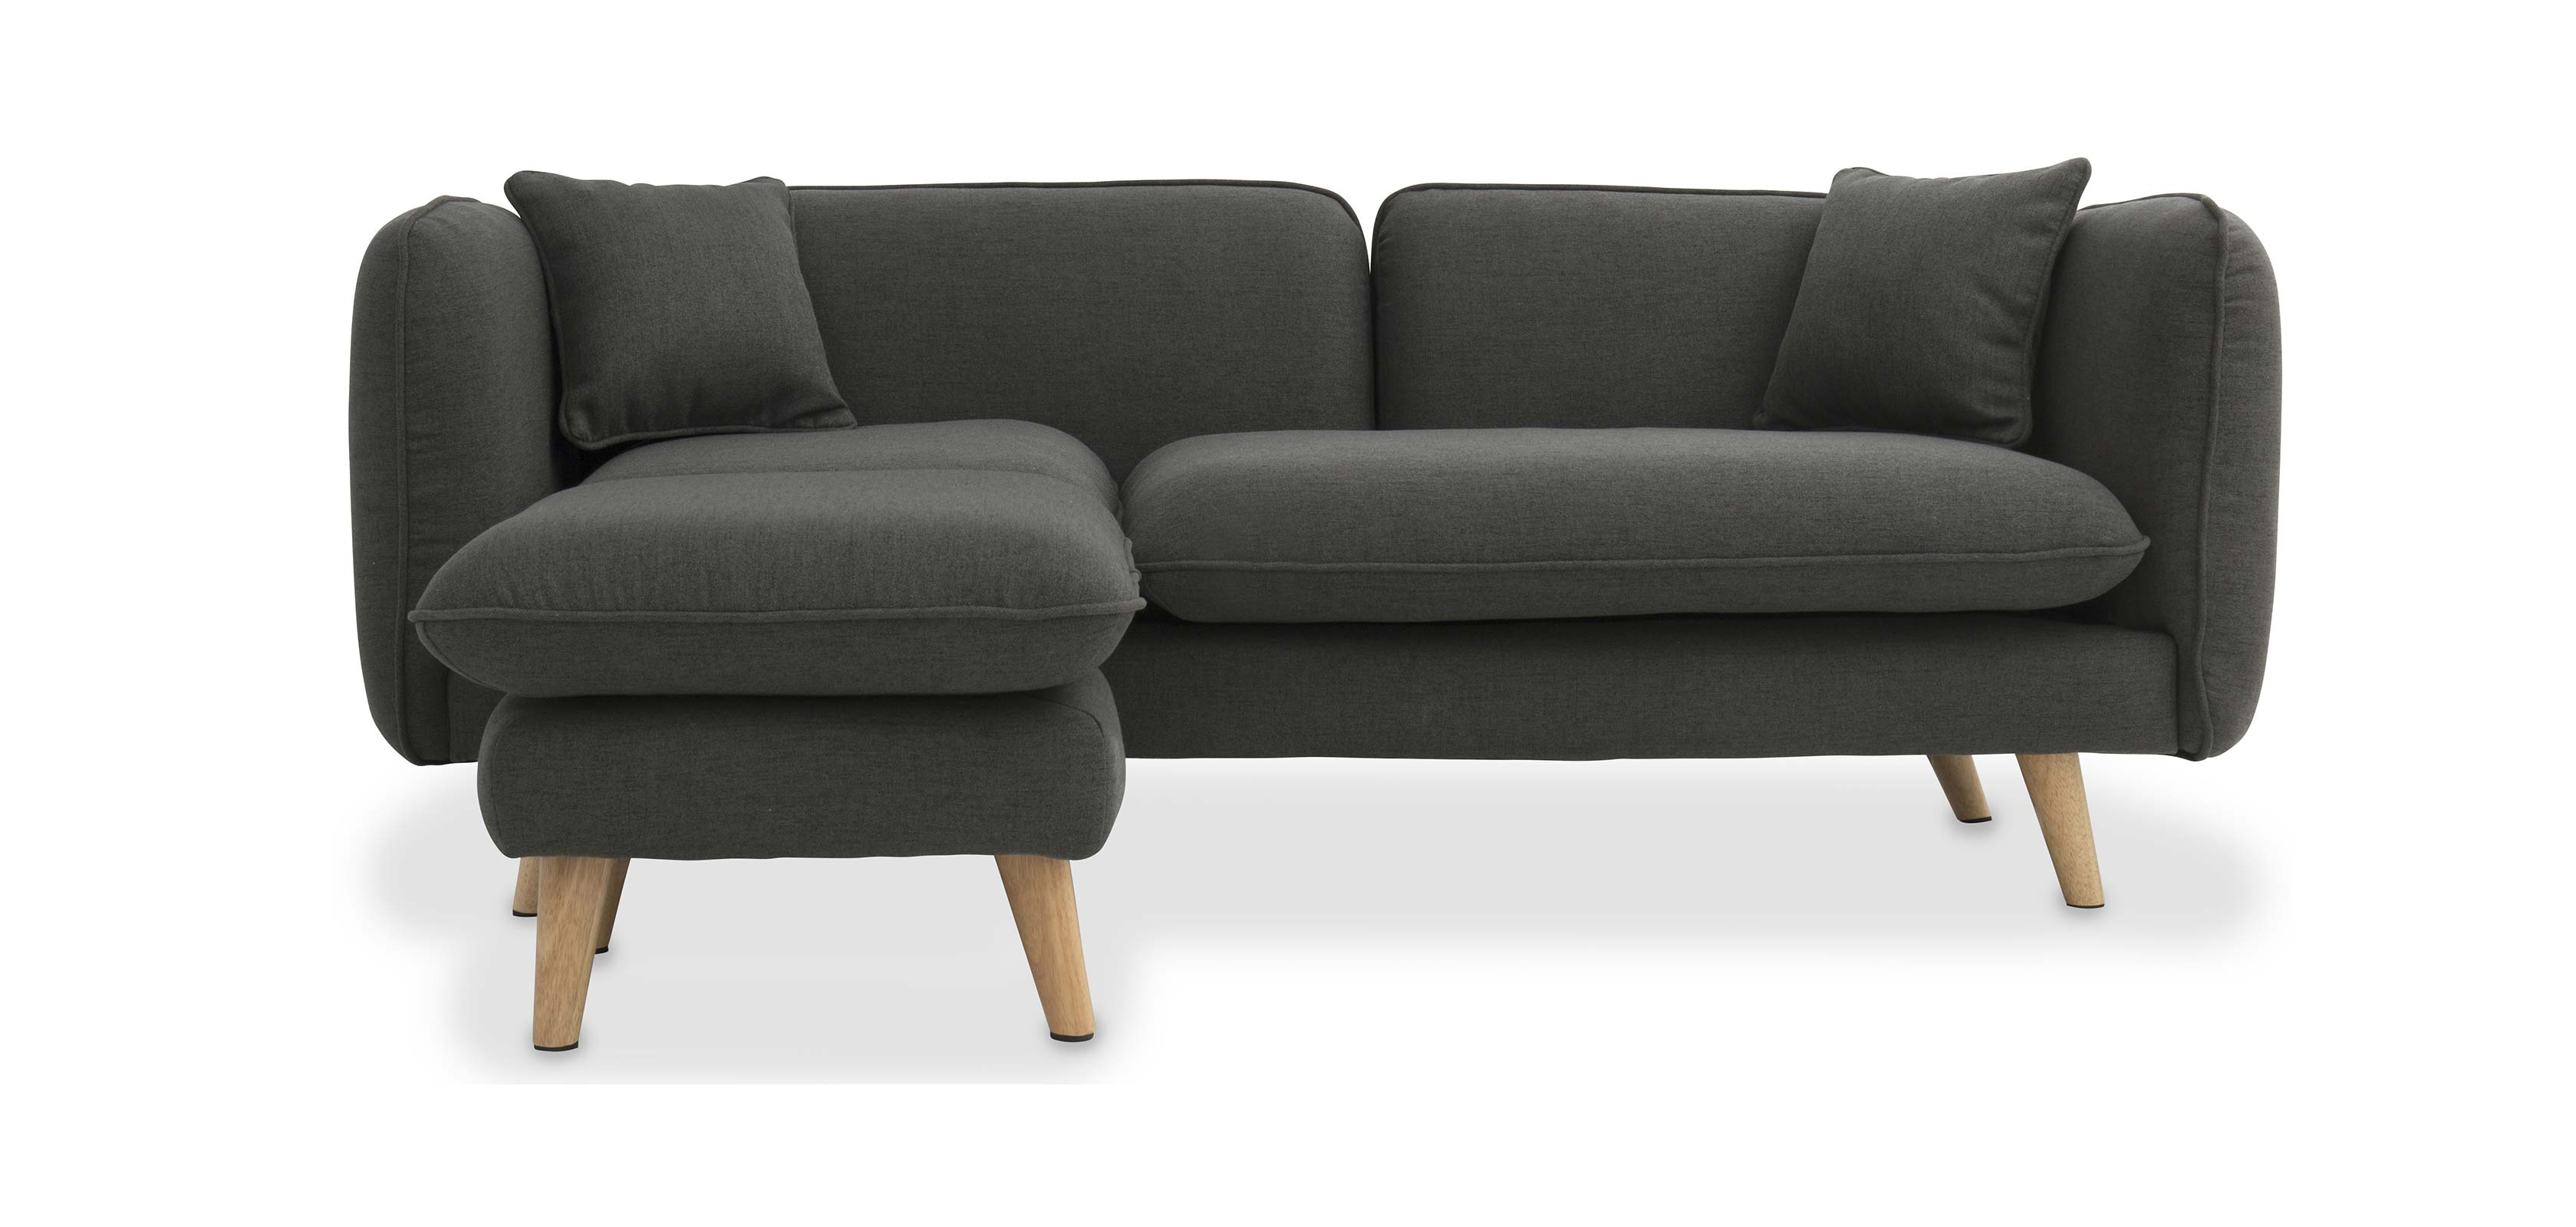 Scandinavian Style Sofa Recast Bed